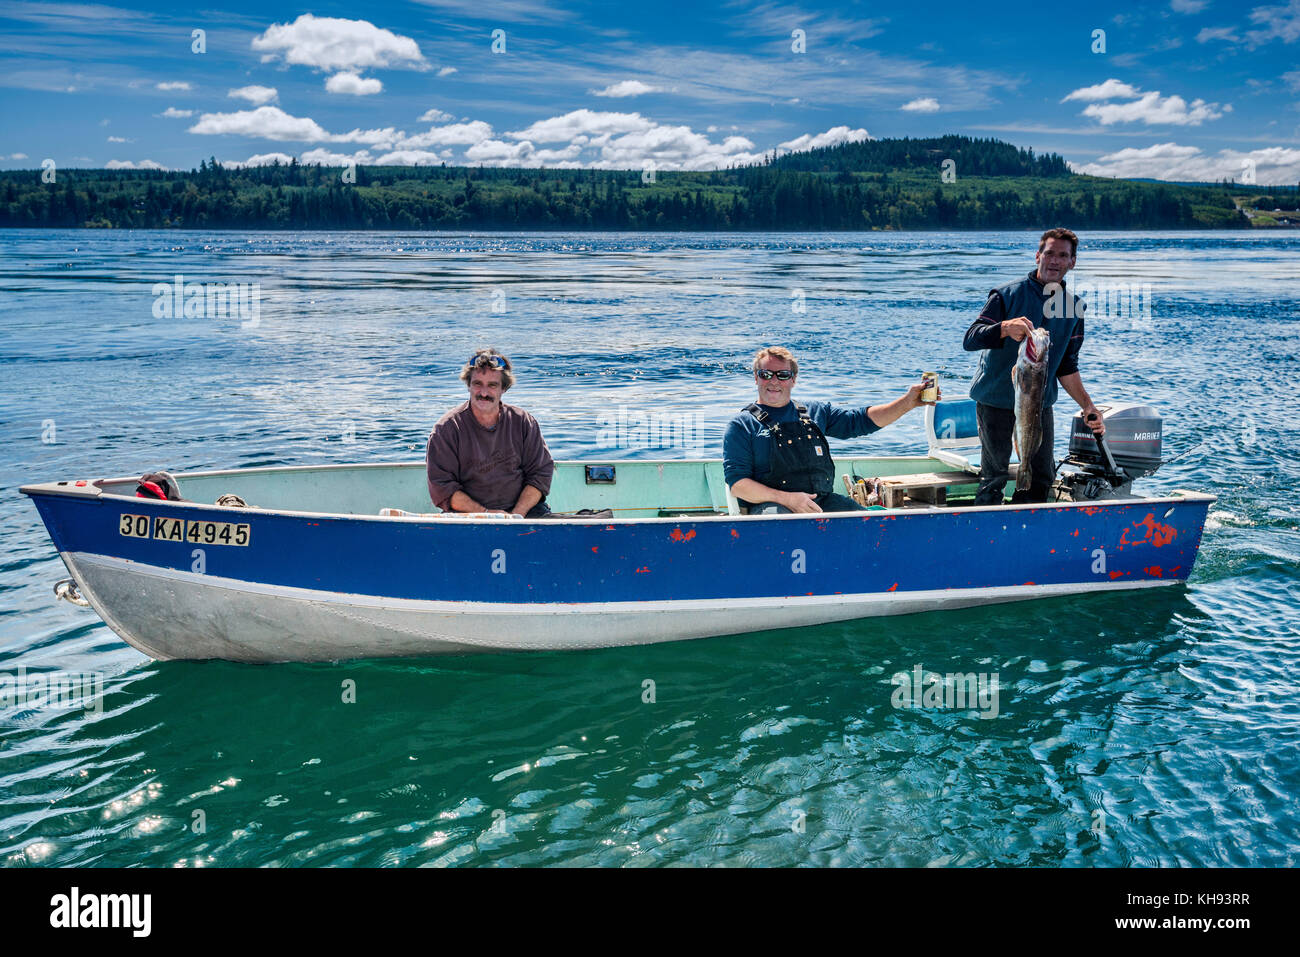 Three men showing fish they caught, salmon, in small boat, in Johnstone Strait off Vancouver Island, British Columbia, - Stock Image